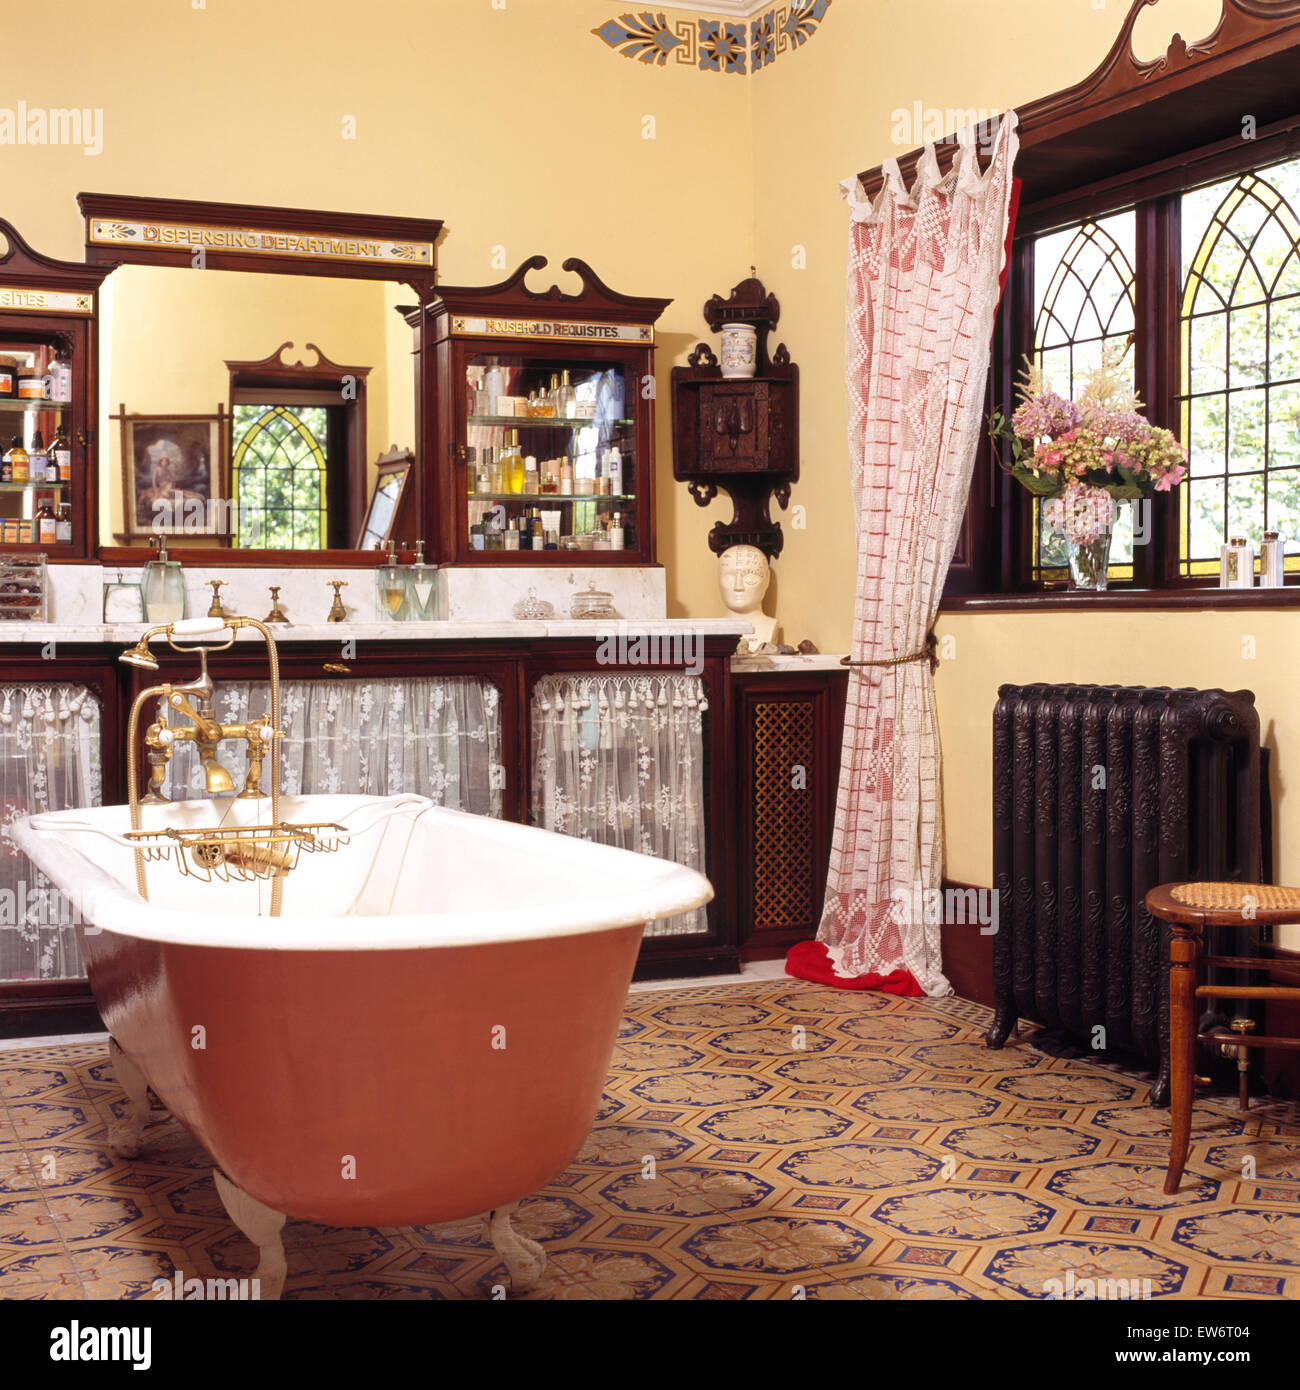 Painted roll top bath in nineties edwardian style bathroom with painted roll top bath in nineties edwardian style bathroom with patterned floor tiles and mahogany vanity unit dailygadgetfo Choice Image